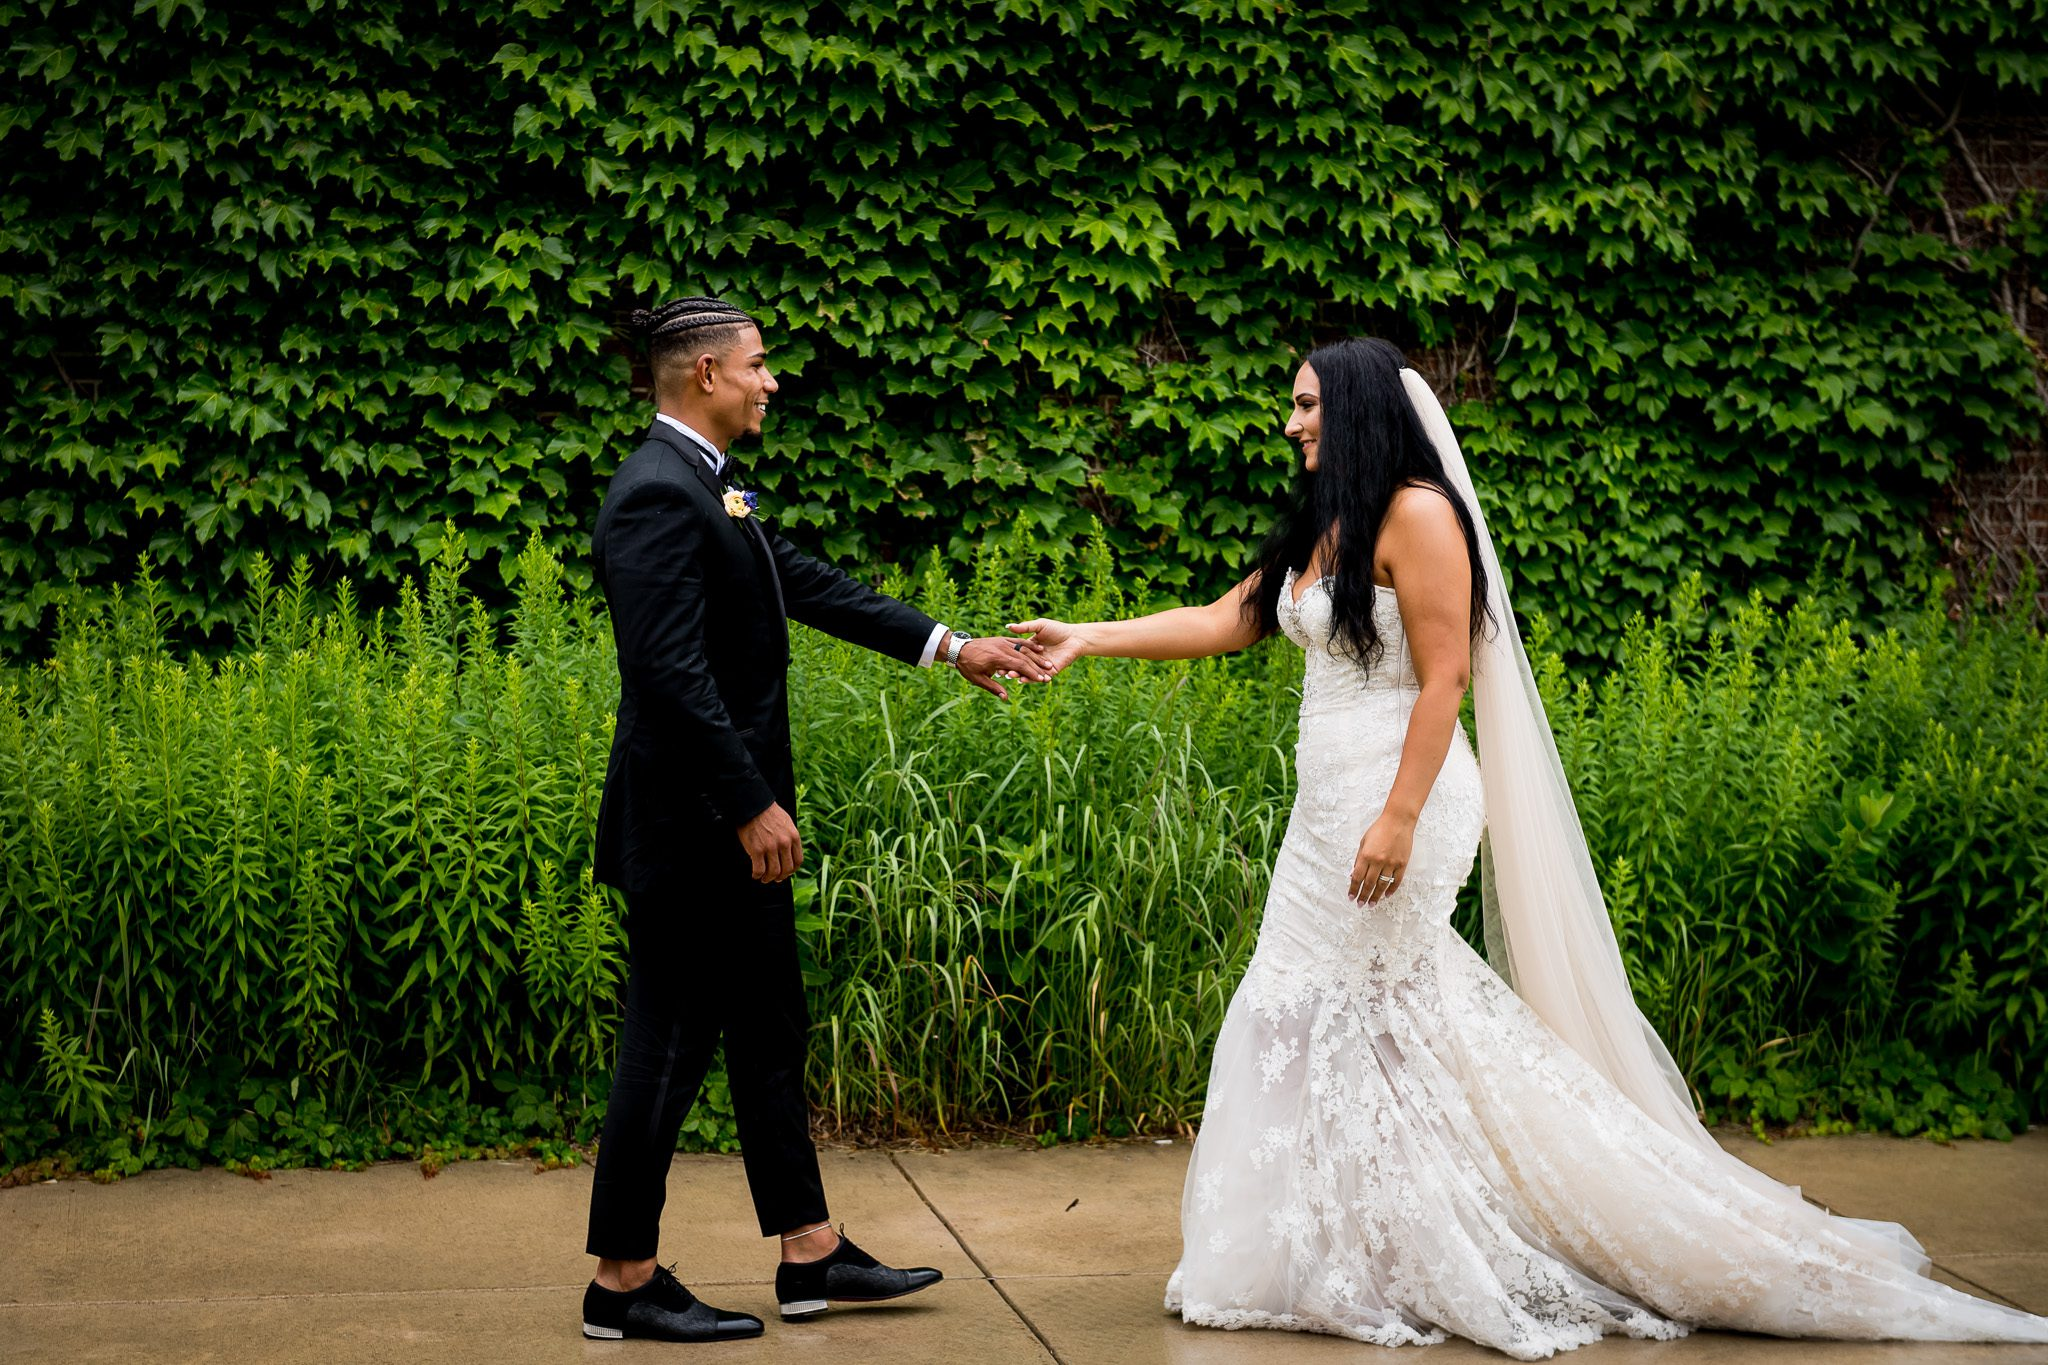 Bride & Groom reach their hands out to each other in front of a lush ivy covered wall.